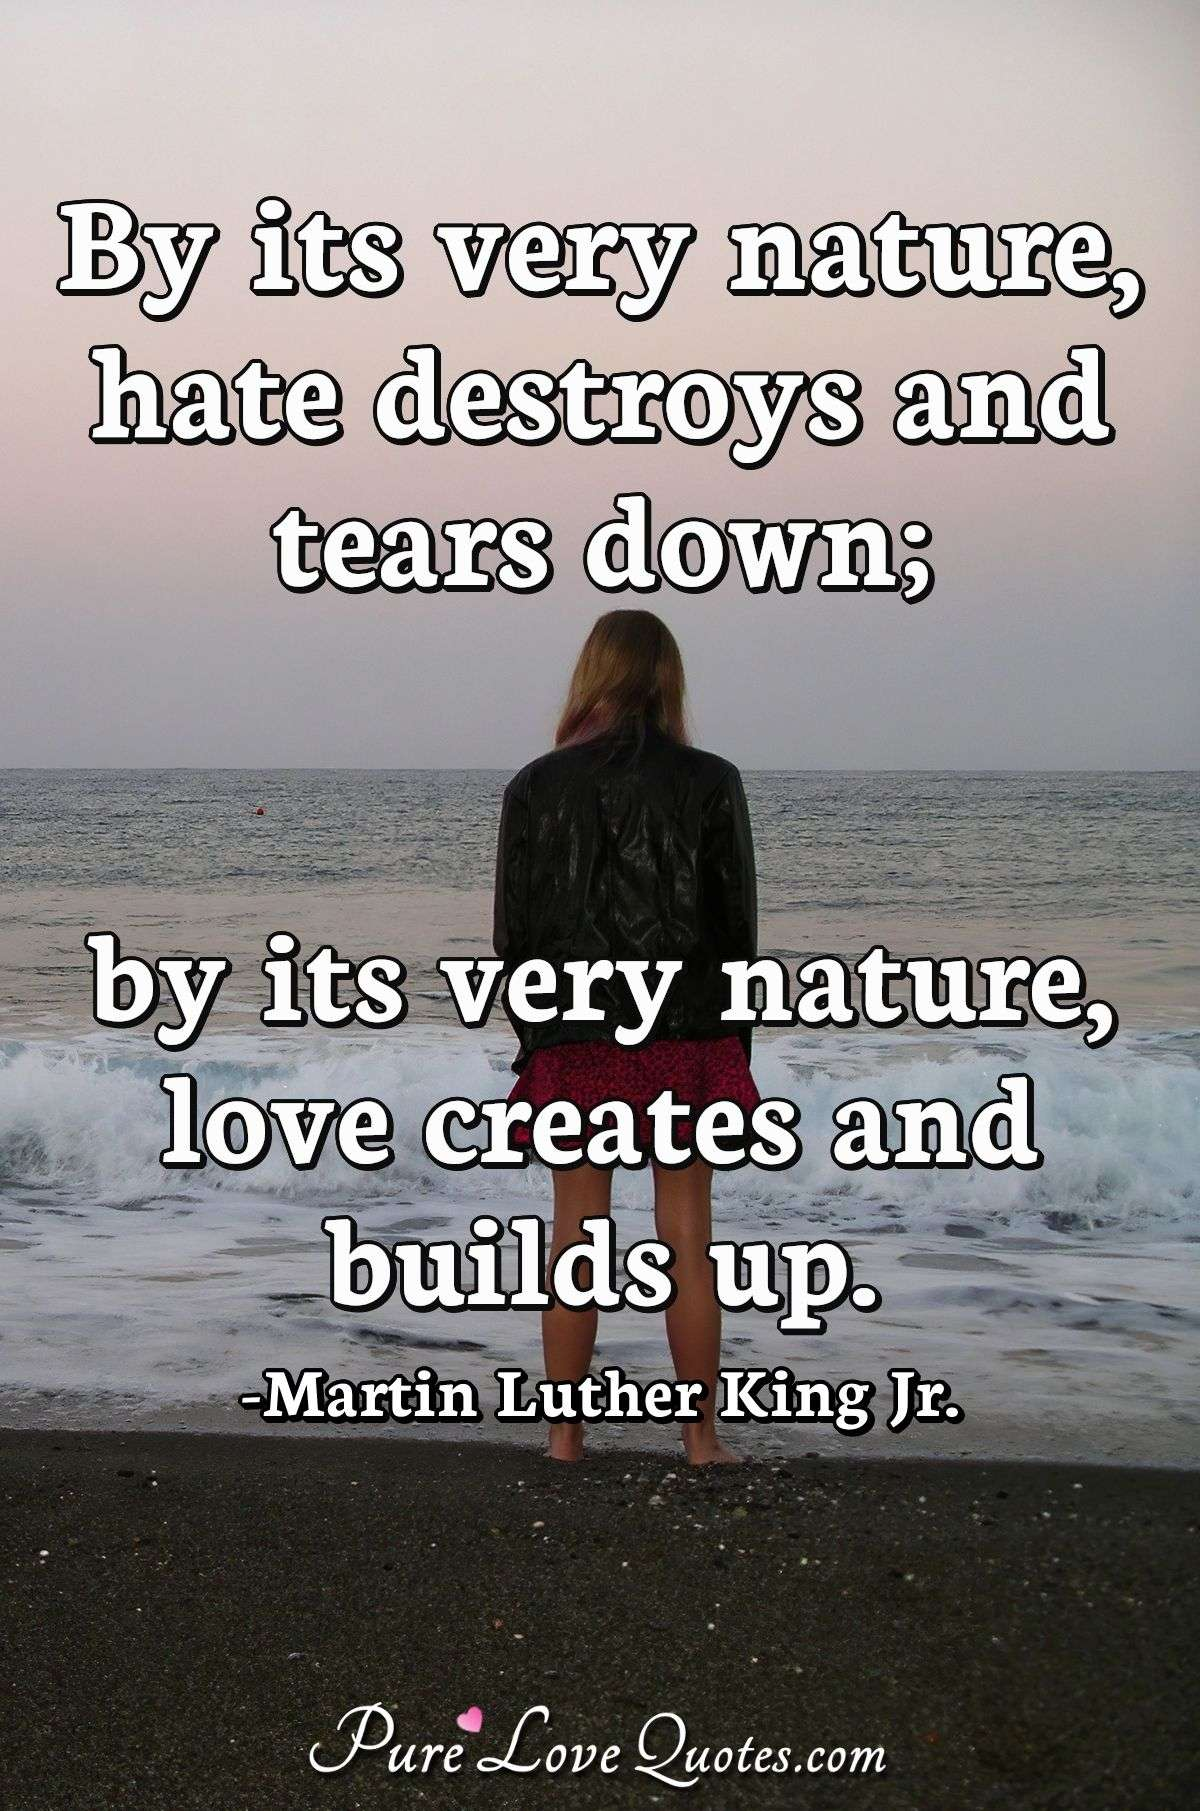 By its very nature, hate destroys and tears down; by its very nature, love creates and builds up. - Martin Luther King Jr.